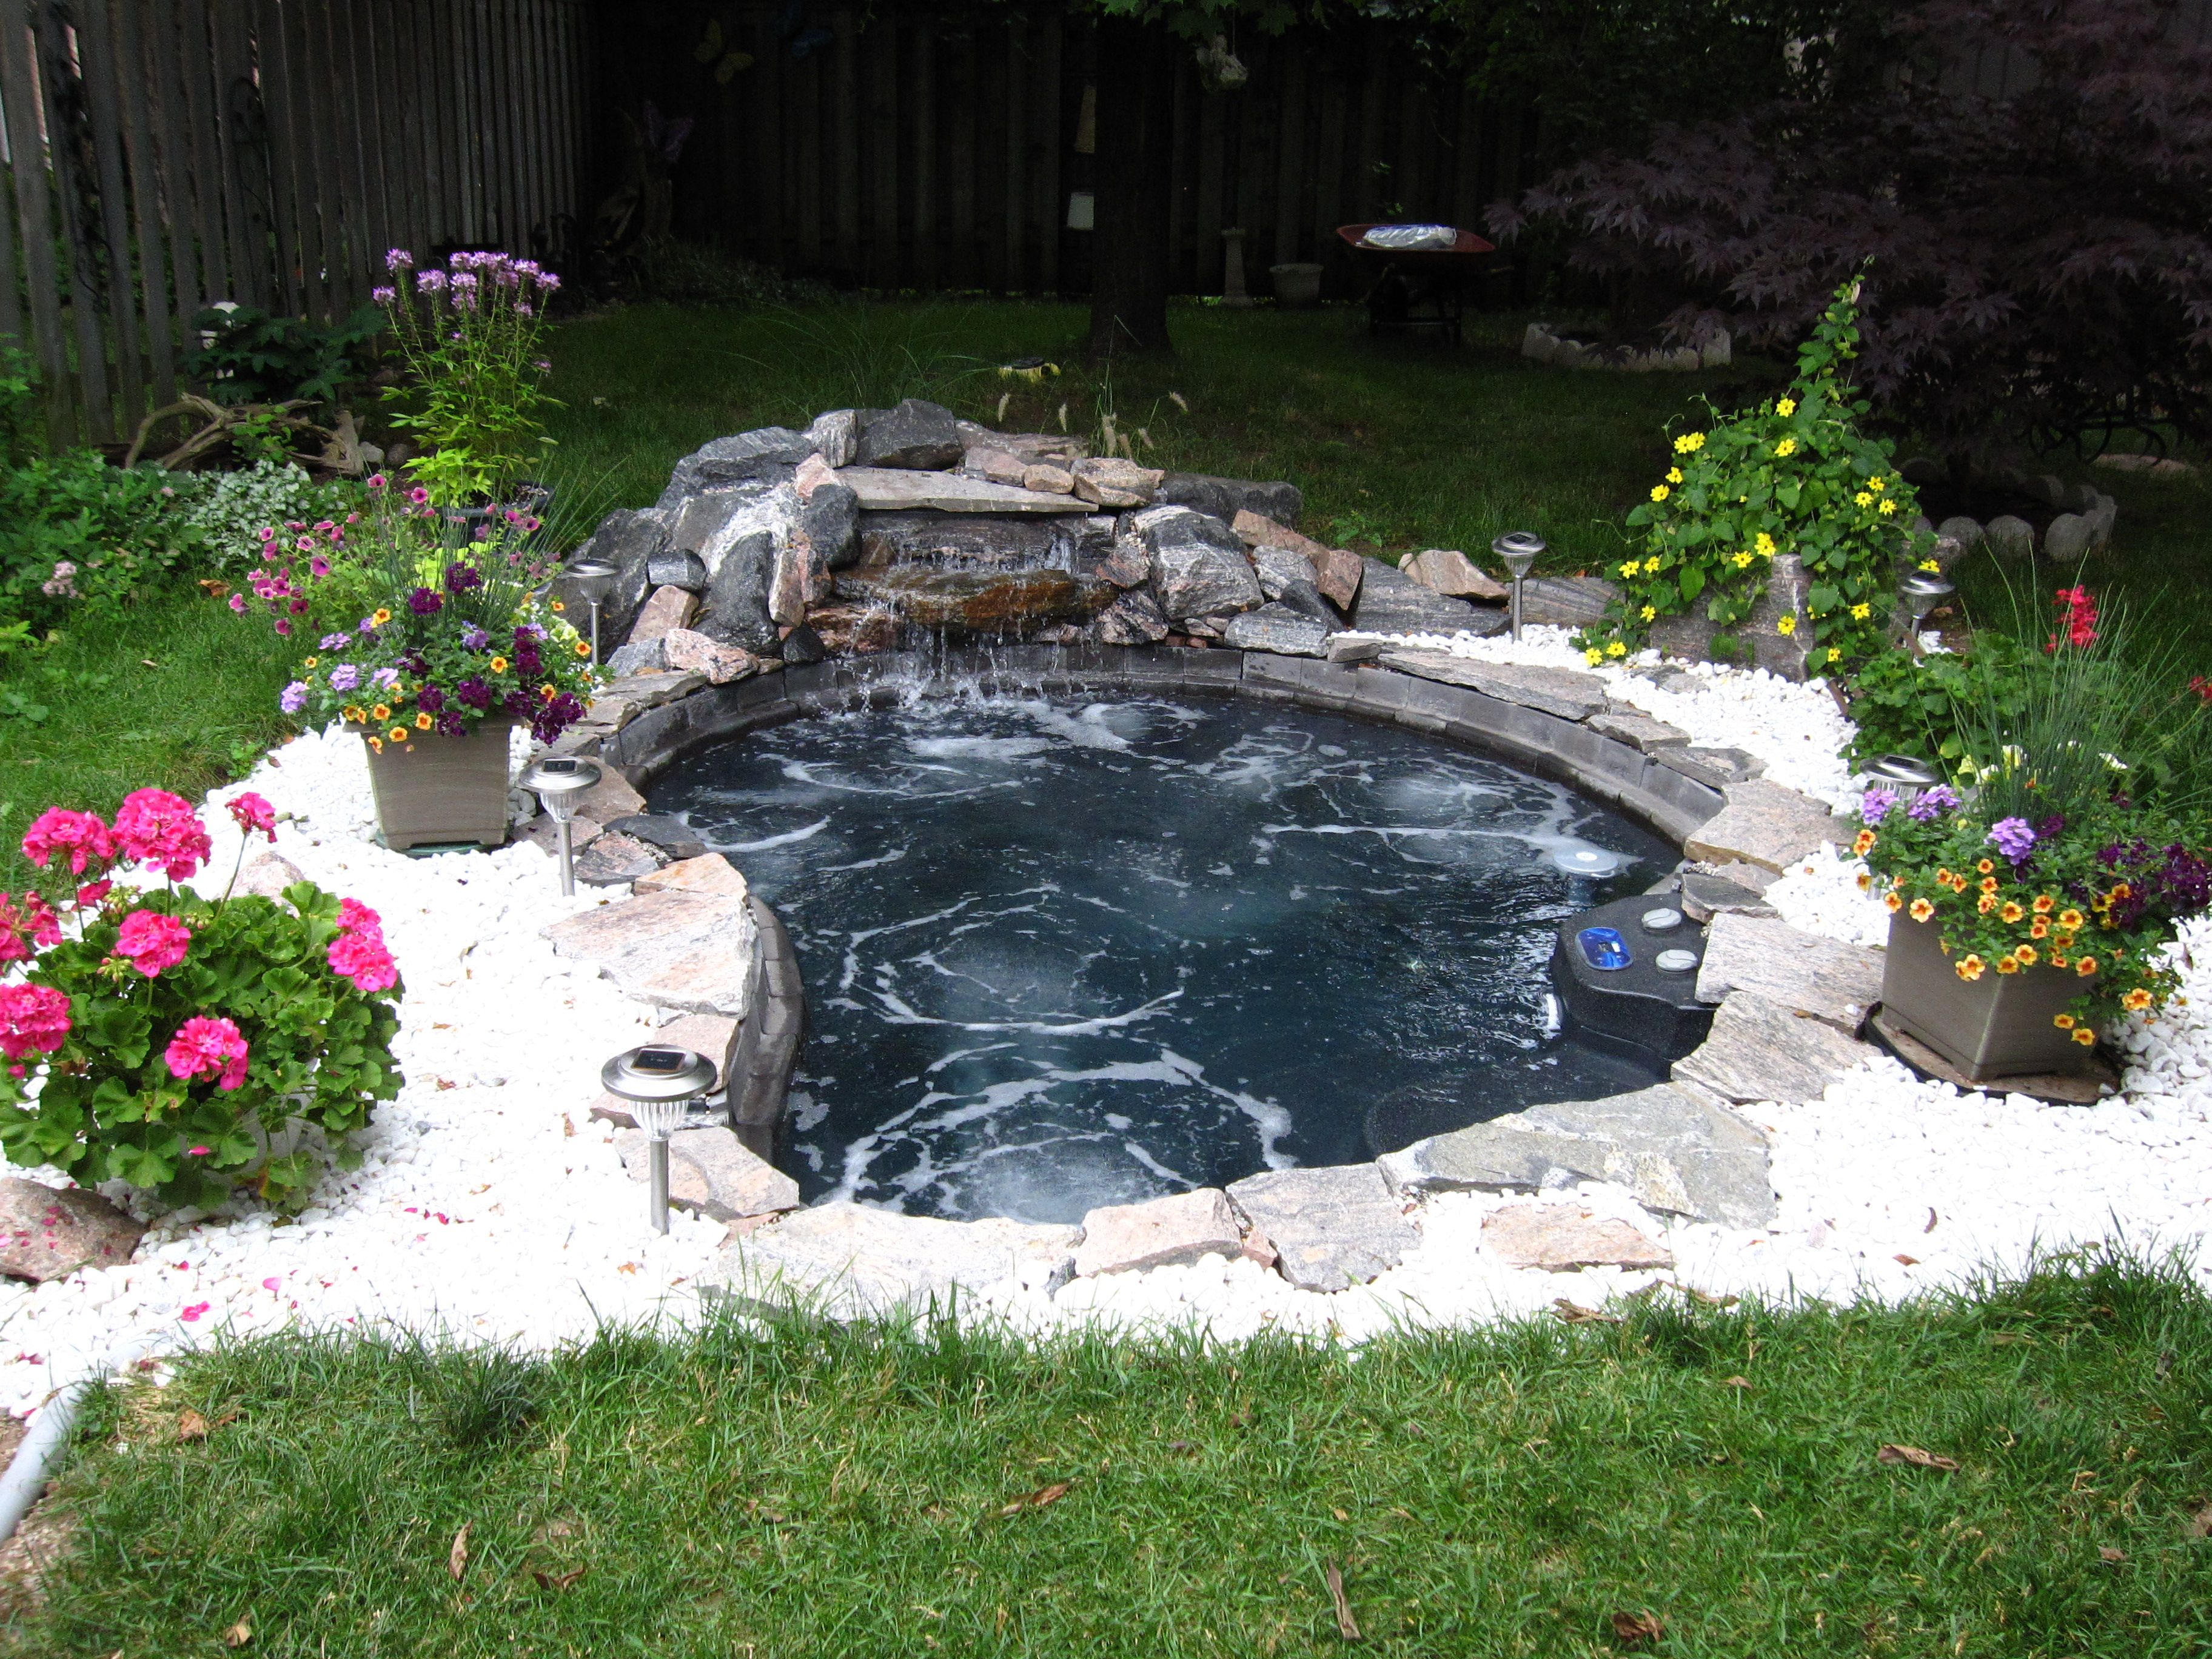 Thinking Of A Large In-ground Spa With A Waterfall Feature